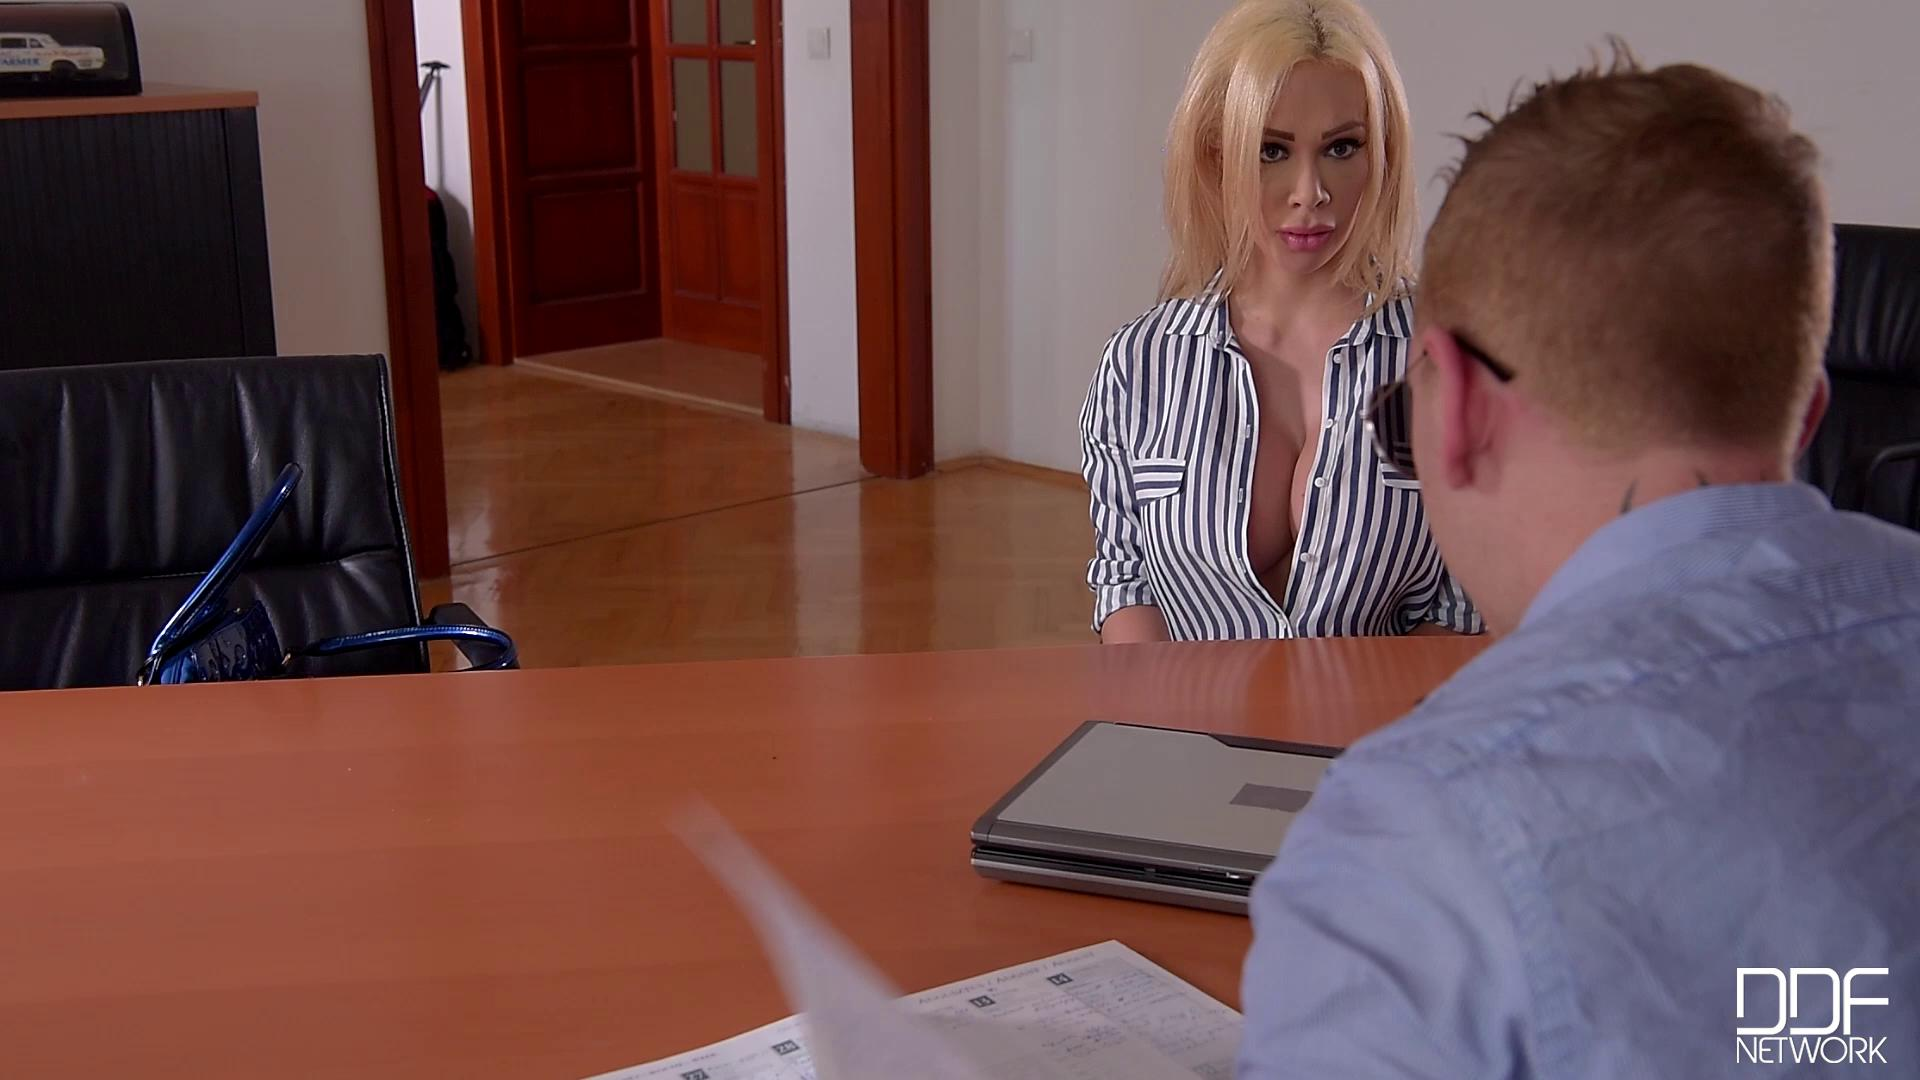 DDFBusty – Chessie Kay